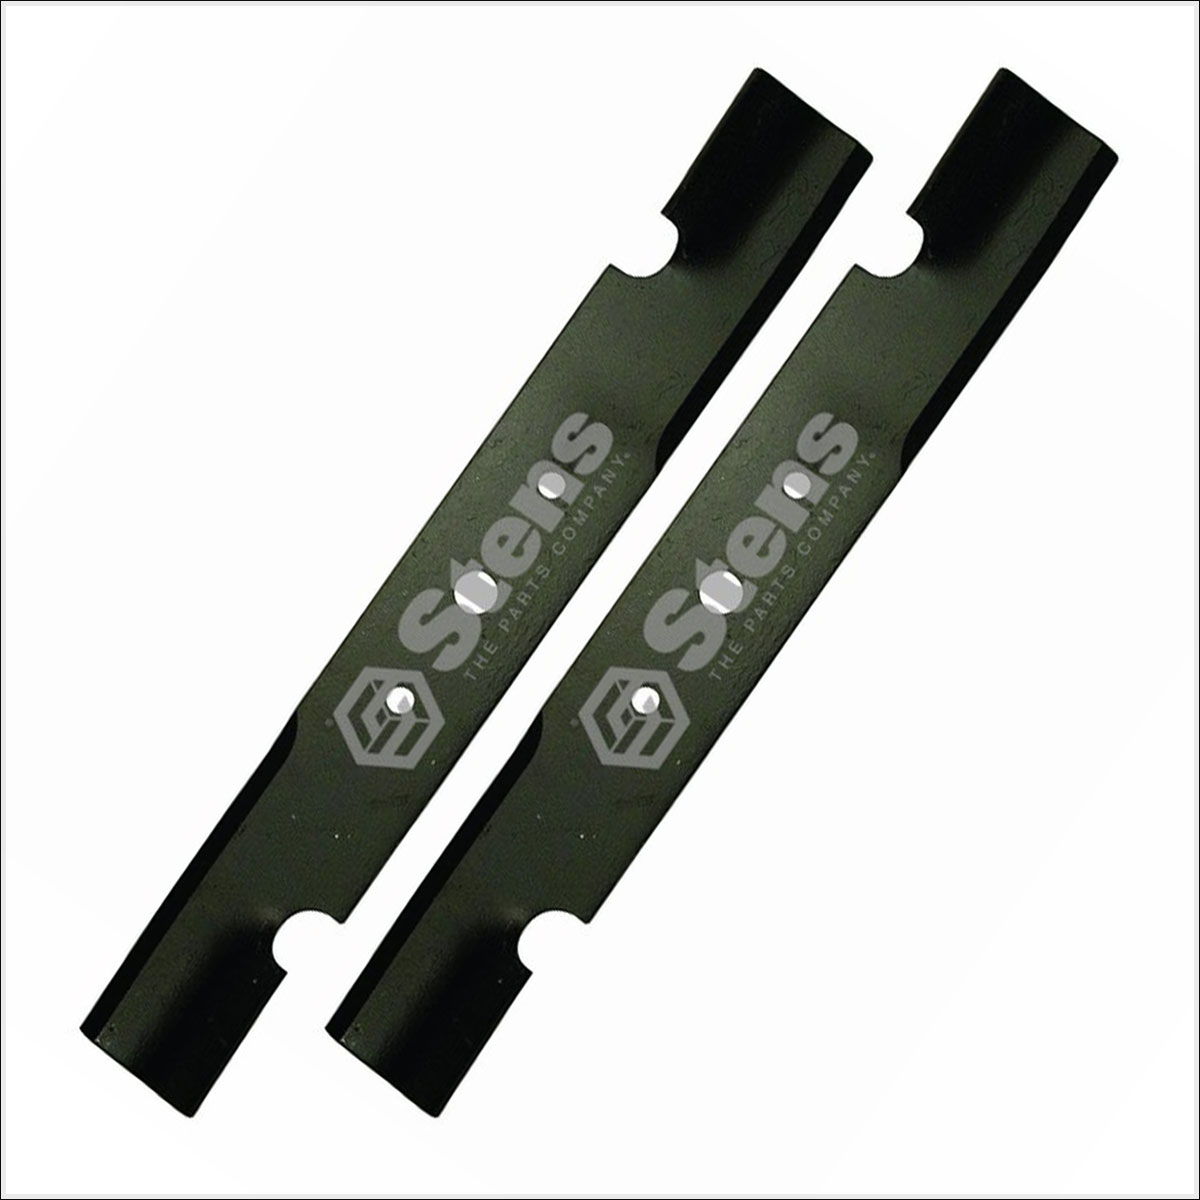 Stens Notched Air-Lift Blades Scag & Other Brands, 2 Blad...